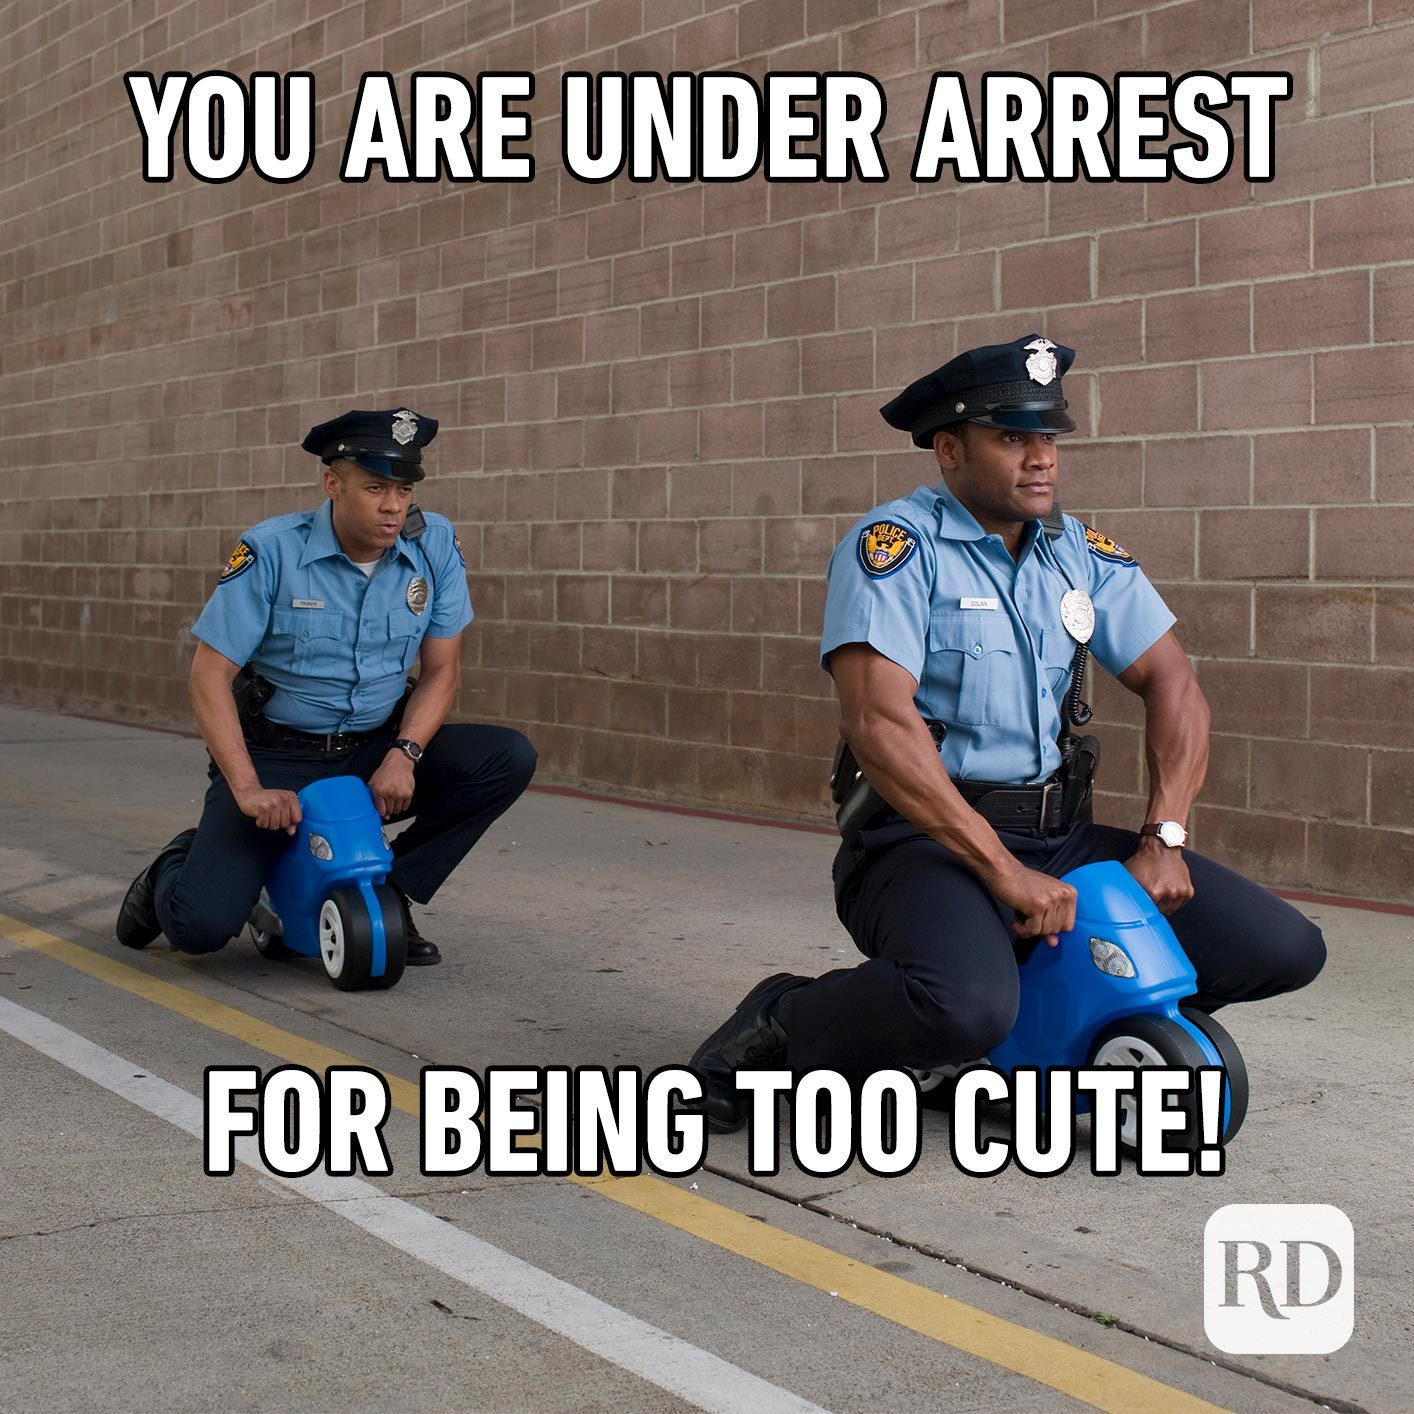 Two police officers. Meme text: You are under arrest for being too cute!